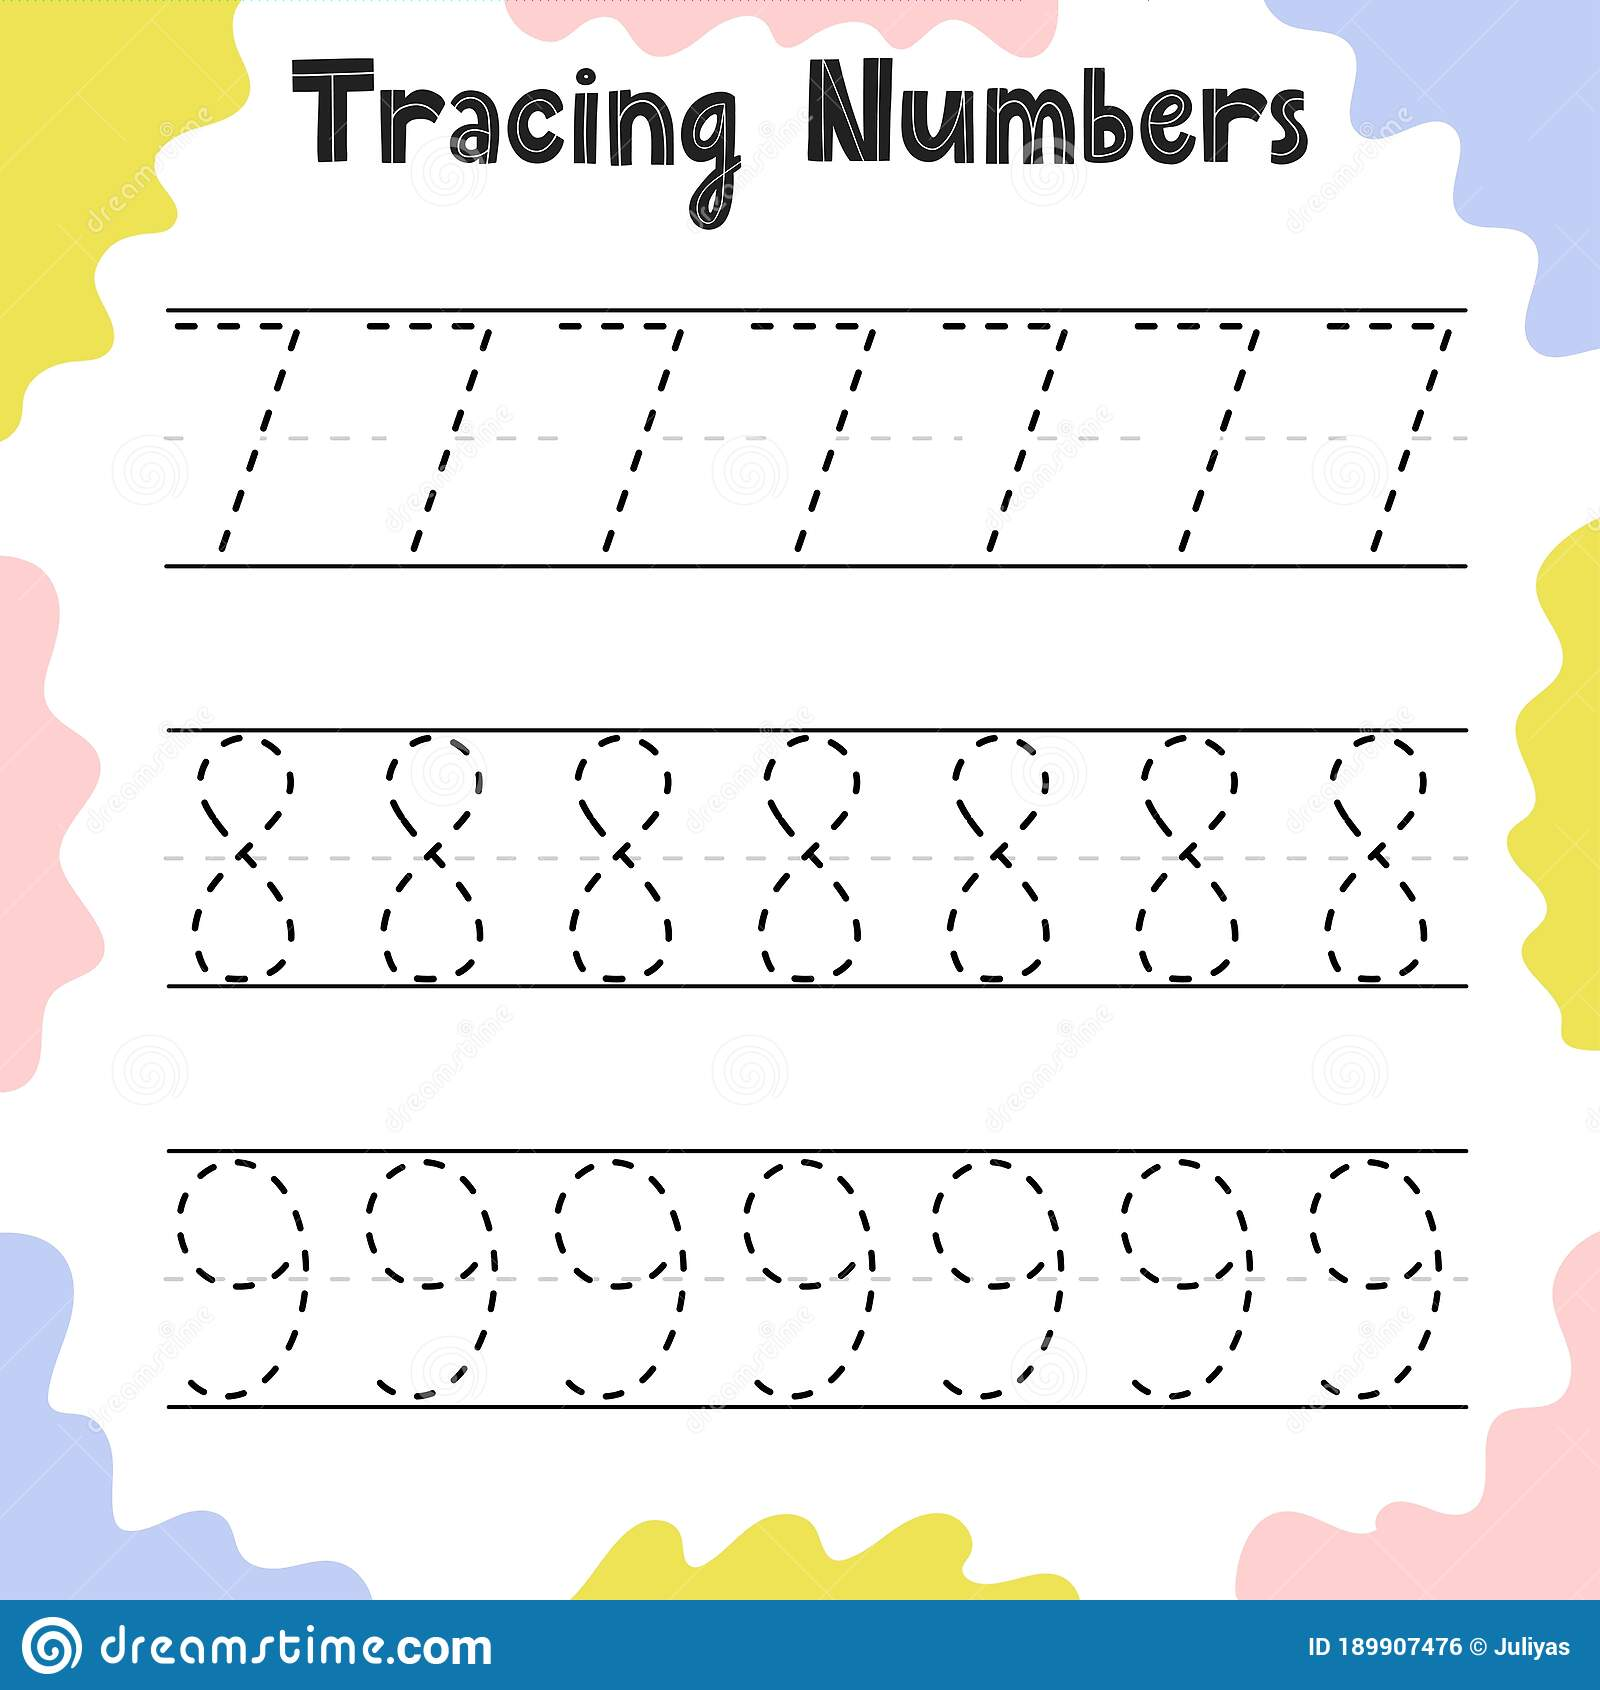 Tracing Numbers 7 8 9 Activity Page For Kids Preschool